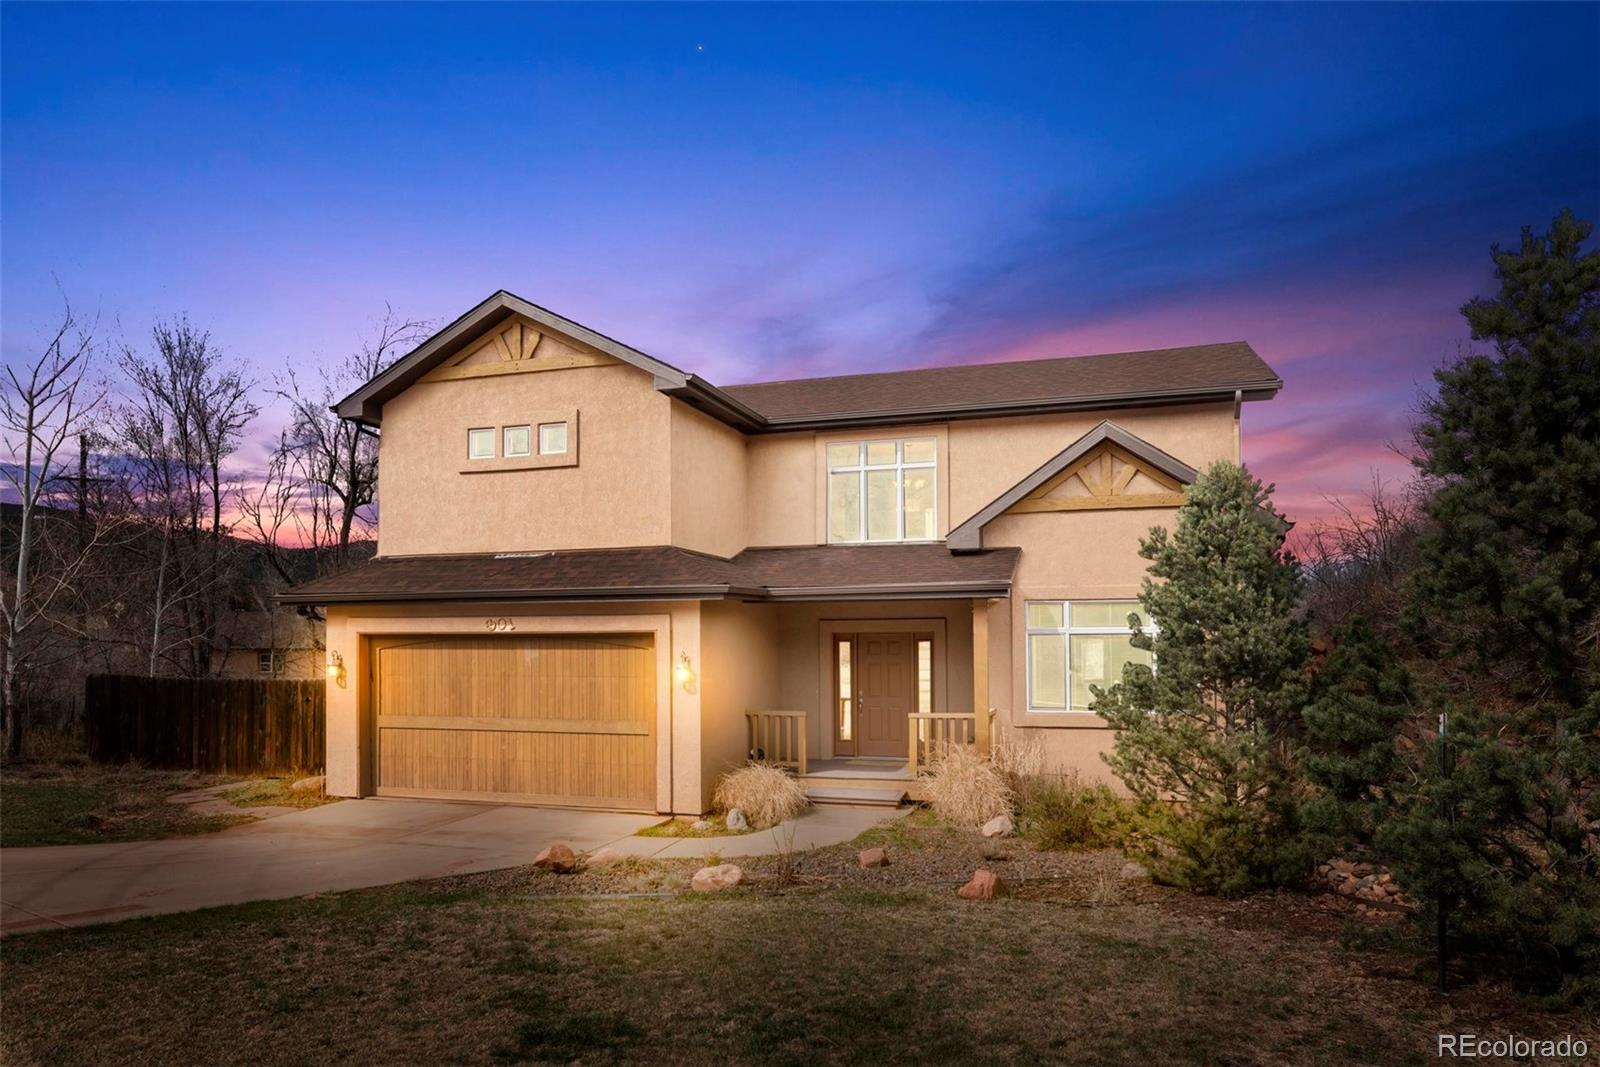 Rare opportunity to own a newer custom home built on over a half acre with beautiful landscaping, views of Garden of the Gods and the mountains in sought after Manitou Springs! All hardwood and tile floors throughout, central air conditioning. Gorgeous open concept kitchen with cherry shaker cabinetry, recessed lighting, pantry, island, slab granite counters, hardwood floors, breakfast bar, gas cook-top and wall oven. Expansive great room with custom cherry built-ins, a gas fireplace, large windows with great views and a walk-out to one of the outdoor composite decks. The home features two suites with private baths - one on the upper floor and one on the main level. Beautiful master suite with sitting area, hardwood floors, walk-in closet, 5 -piece bath, double sided gas fireplace, gorgeous views and walk-out to a private veranda with Garden of the Gods views. The master bath is spacious with a large jetted tub, double vanity with granite counters, travertine tile and over-sized shower. Large upstairs loft perfect for a second family room/game area. Main level laundry with tons of built-in storage and utility sink. Ample outdoor entertaining space surrounded by beautiful landscape. Composite wraparound deck with gas fireplace, private master deck and front porch. Low maintenance stucco exterior. Tons of mature trees, bushes and flower on the large private lot. Grand staircase off foyer detailed with oak & slate. Only minutes to Manitou Springs, the community pool, Garden of the Gods, HWY 24, I-25 and downtown Colorado Springs. See this home quickly!